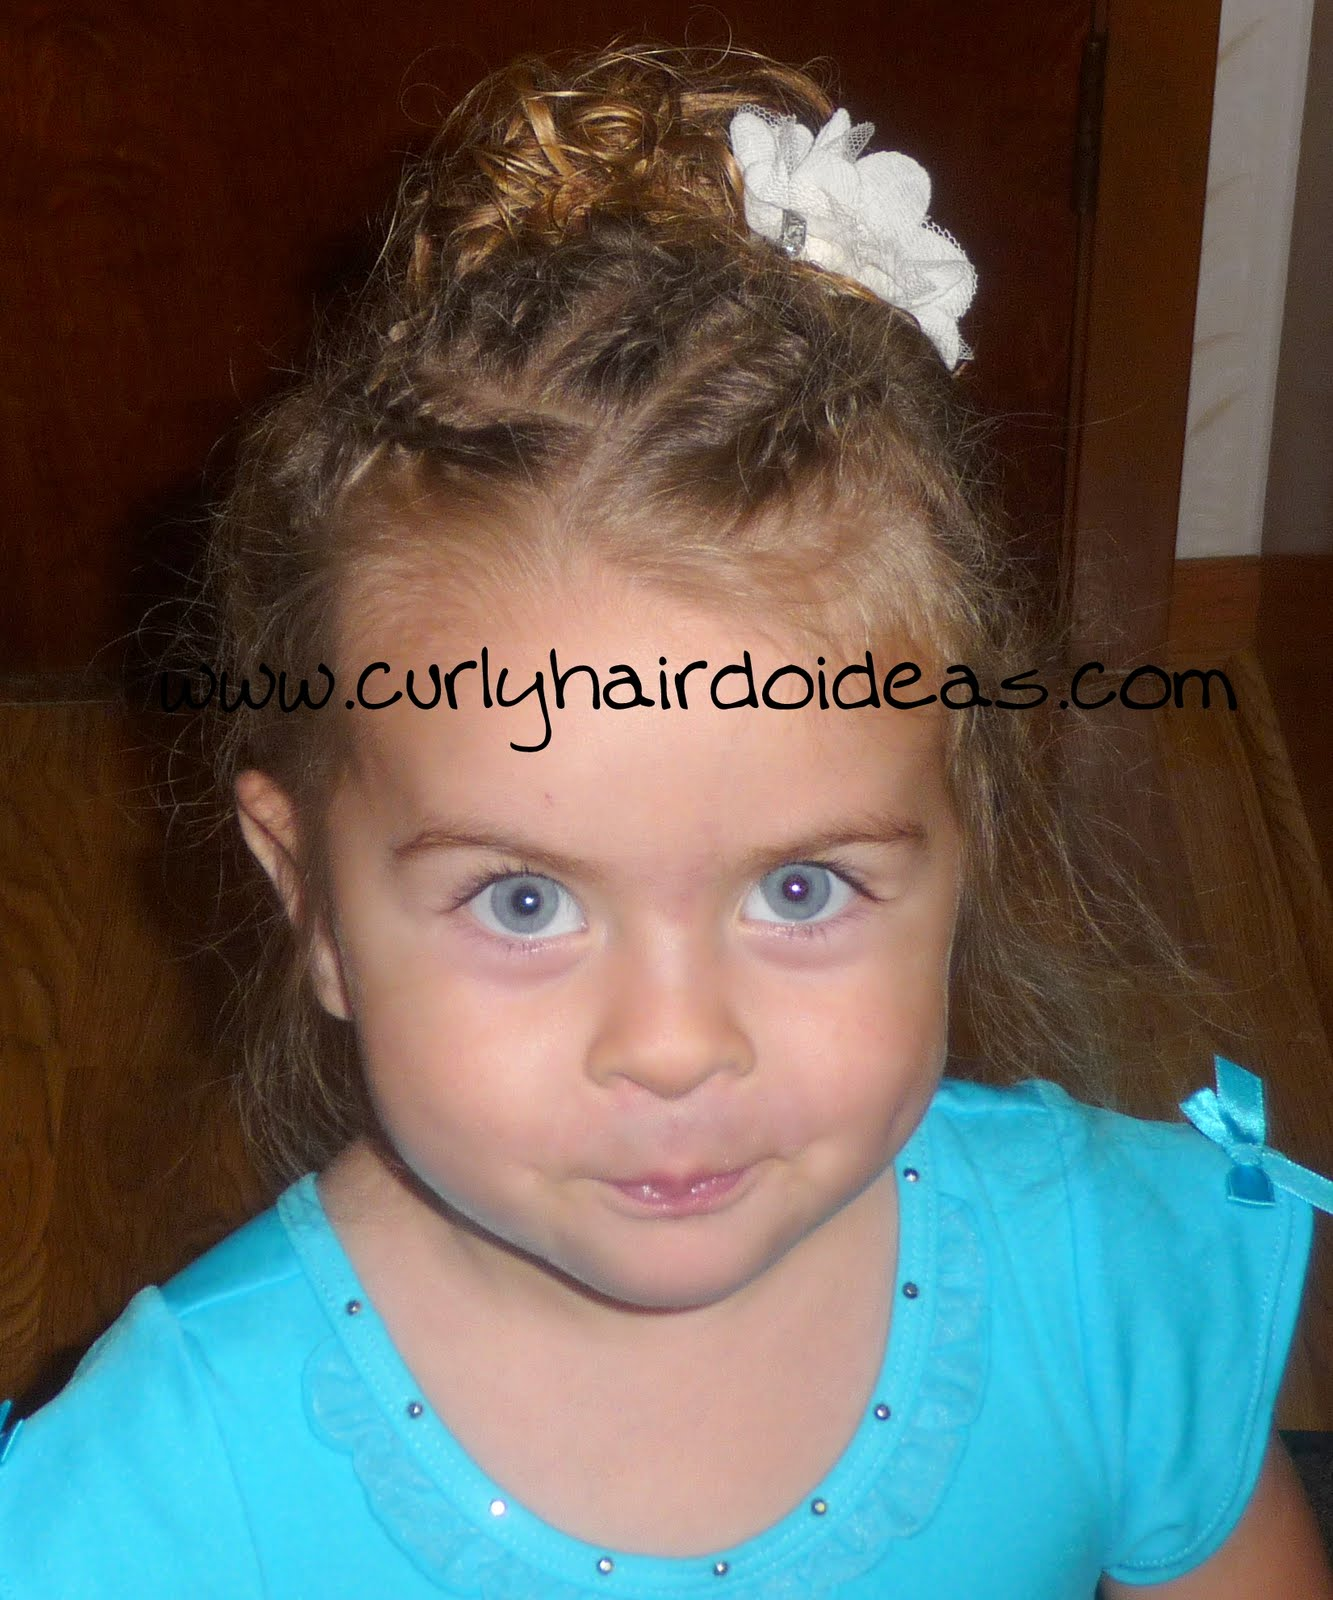 Curly Hairdo Ideas: Toddler Hairstyle For Dance Class